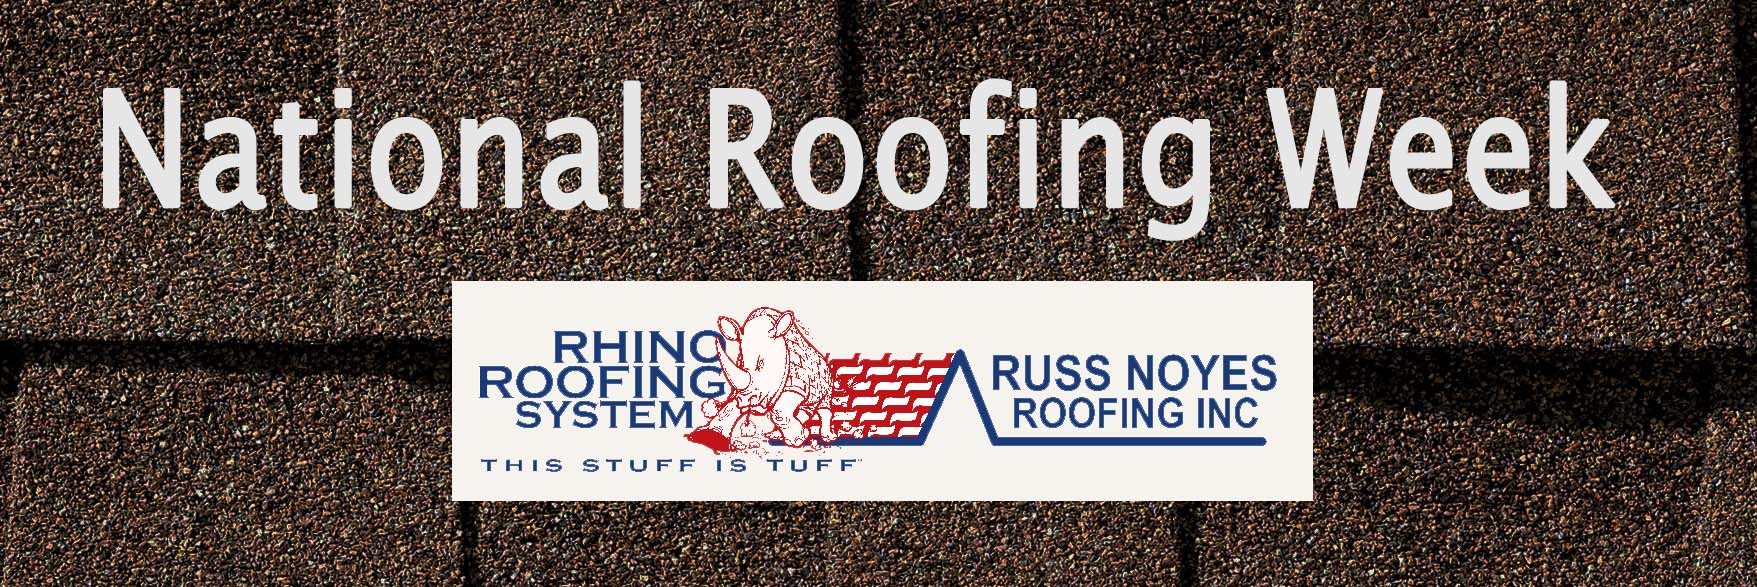 Blog   Celebrating Your Roof and Roofers   Russ Noyes